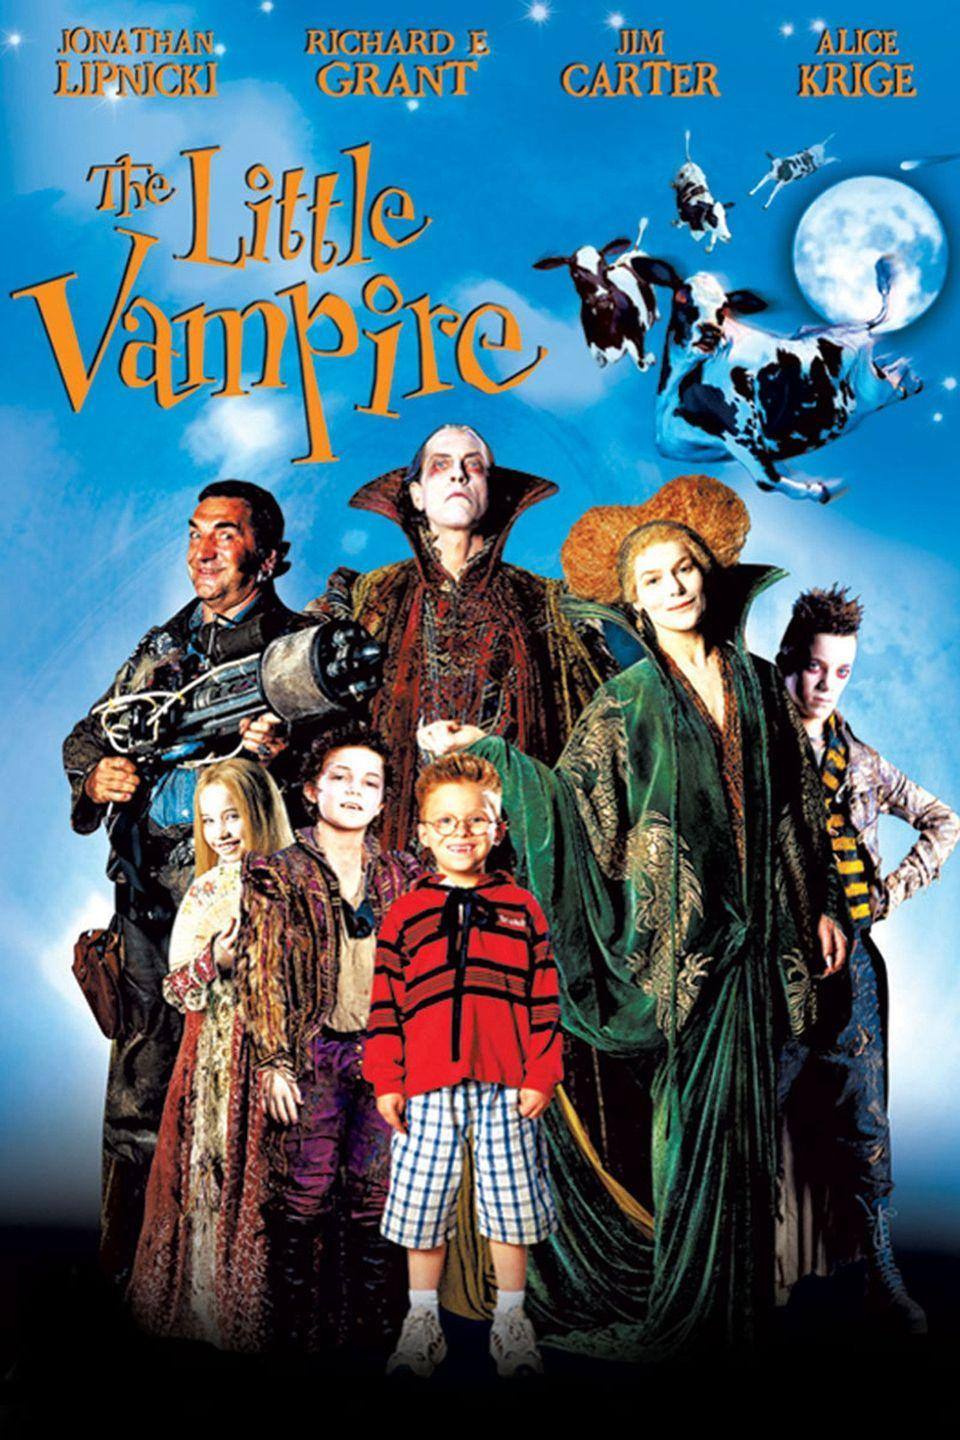 """<p>This feel good movie is about a little boy who befriends a vampire as the two search for a magical amulet that can turn the vampire, and his family, into humans. </p><p><a class=""""link rapid-noclick-resp"""" href=""""https://www.amazon.com/Little-Vampire-Jonathan-Lipnicki/dp/B007IXNBGC/?tag=syn-yahoo-20&ascsubtag=%5Bartid%7C10065.g.29354714%5Bsrc%7Cyahoo-us"""" rel=""""nofollow noopener"""" target=""""_blank"""" data-ylk=""""slk:Watch Now"""">Watch Now</a></p>"""